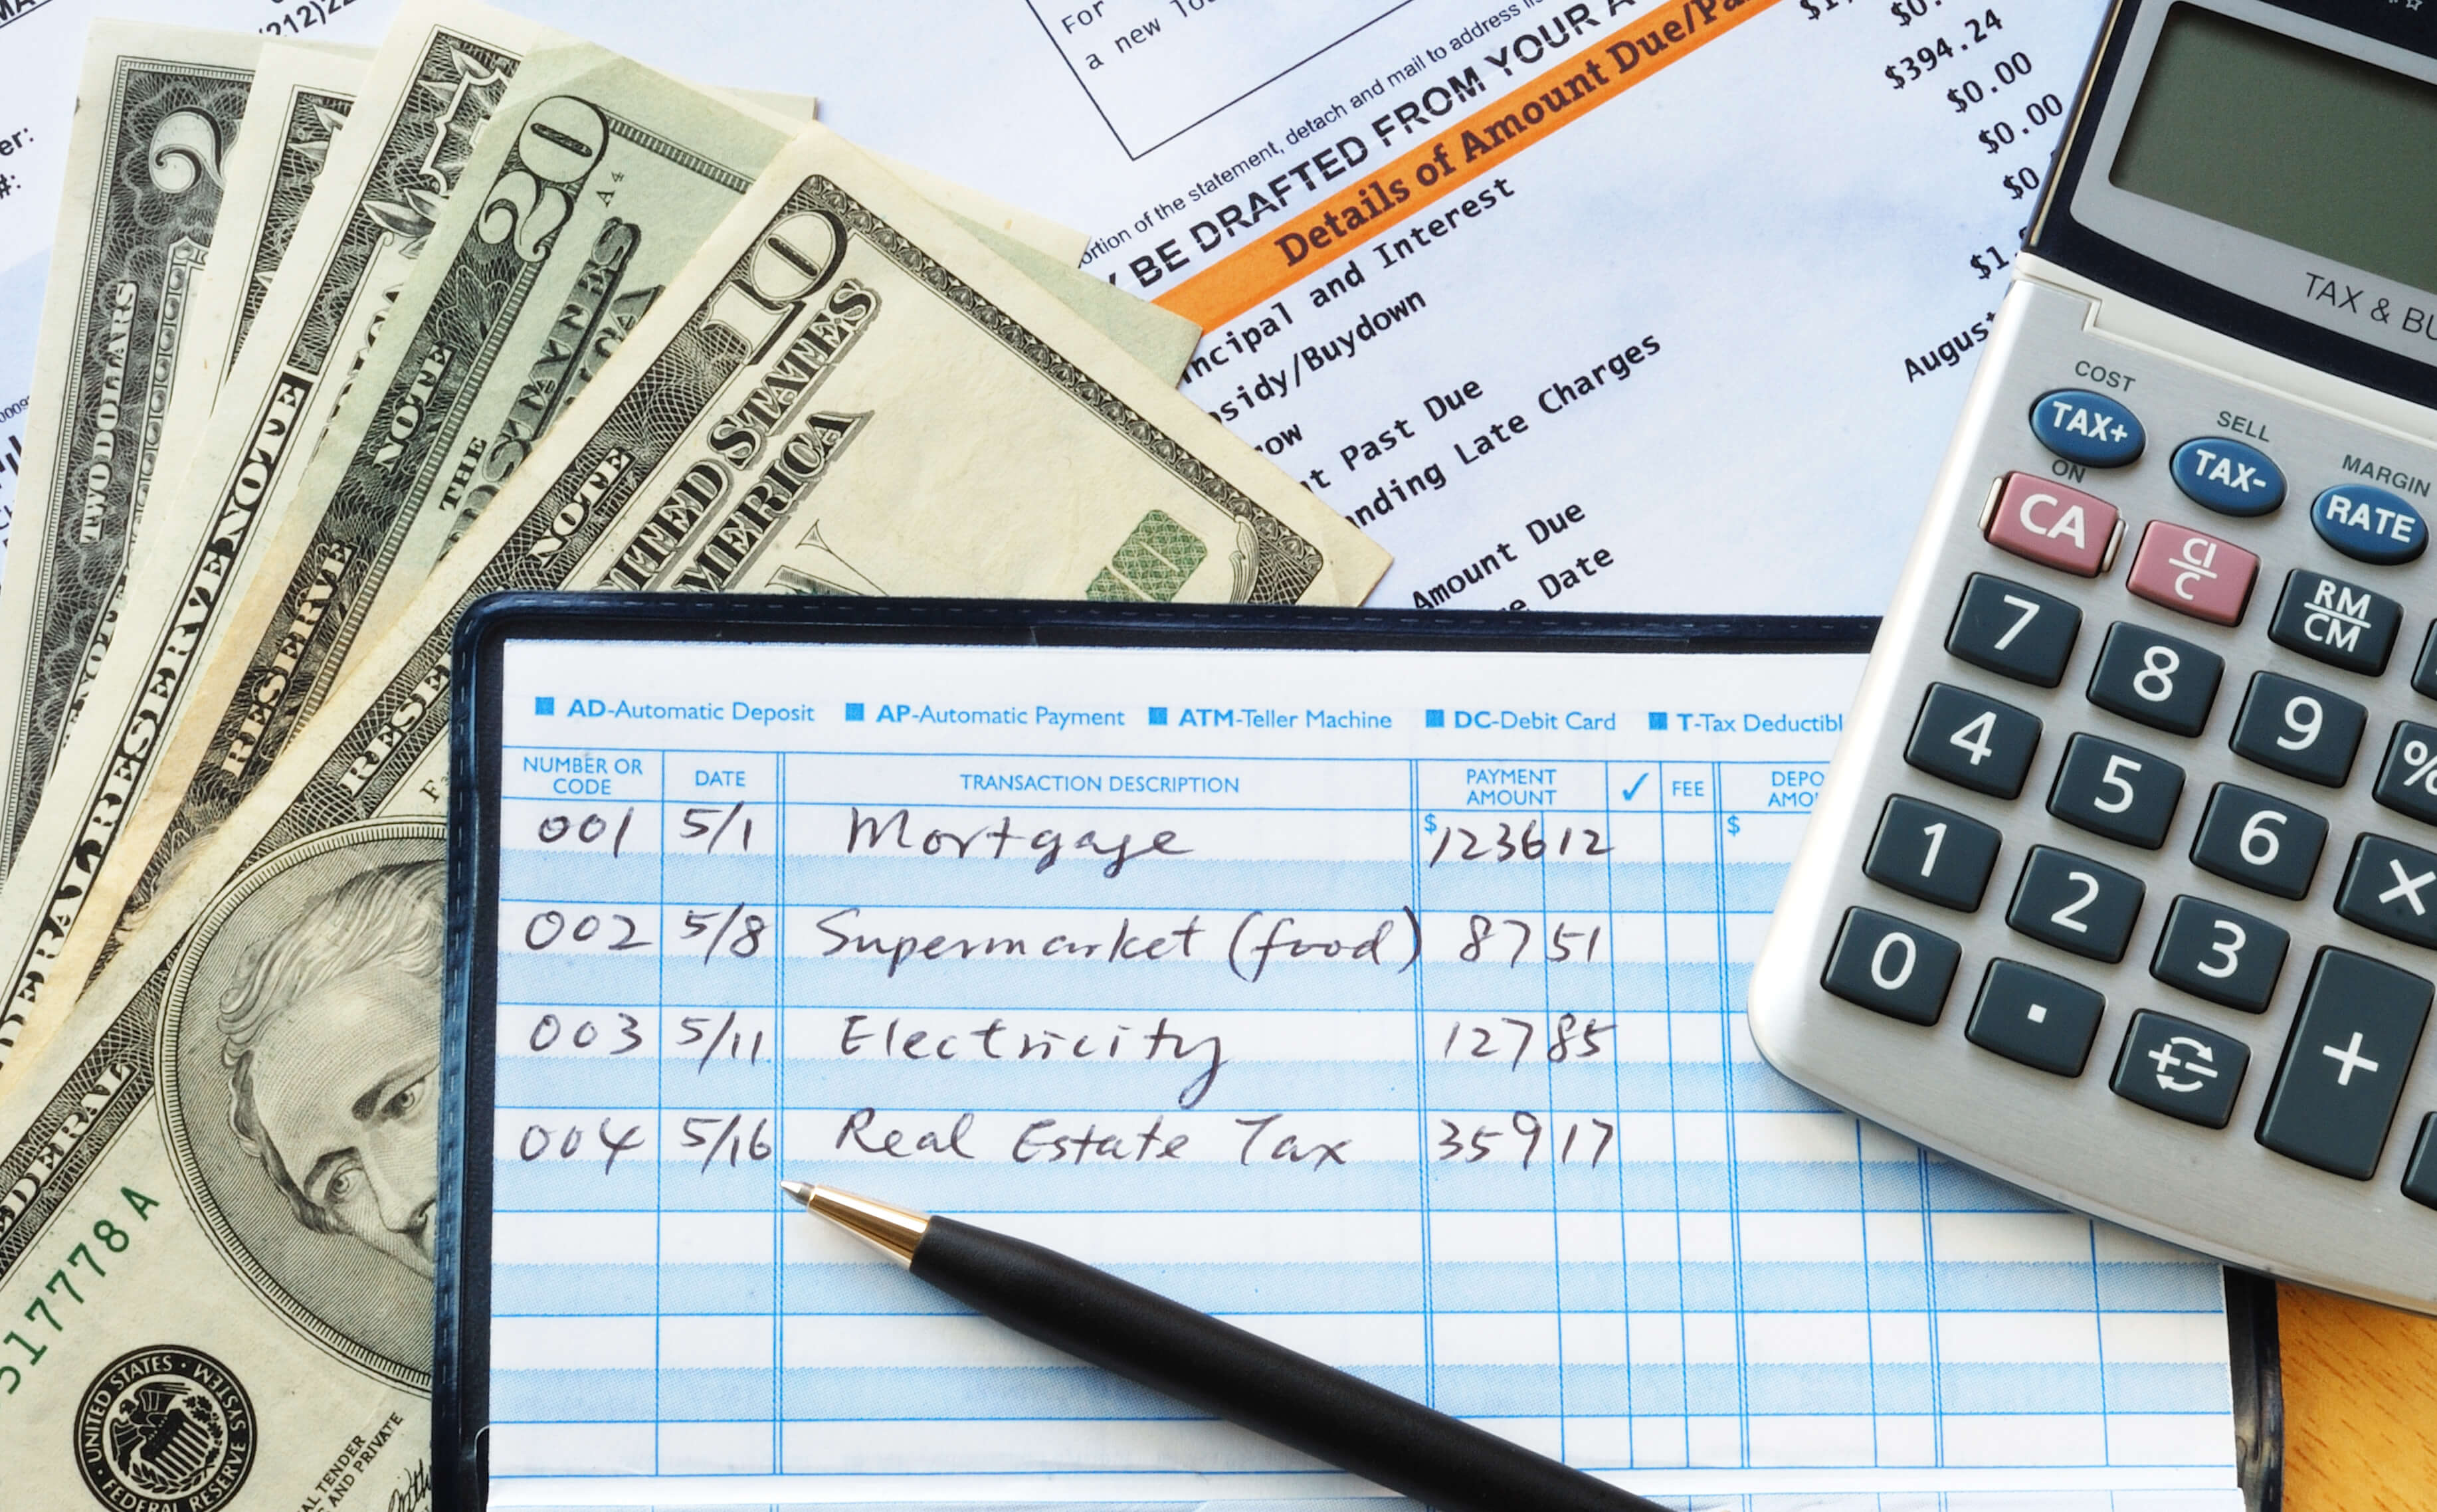 With The New Tax Bill Comes Larger Take-Home Pay